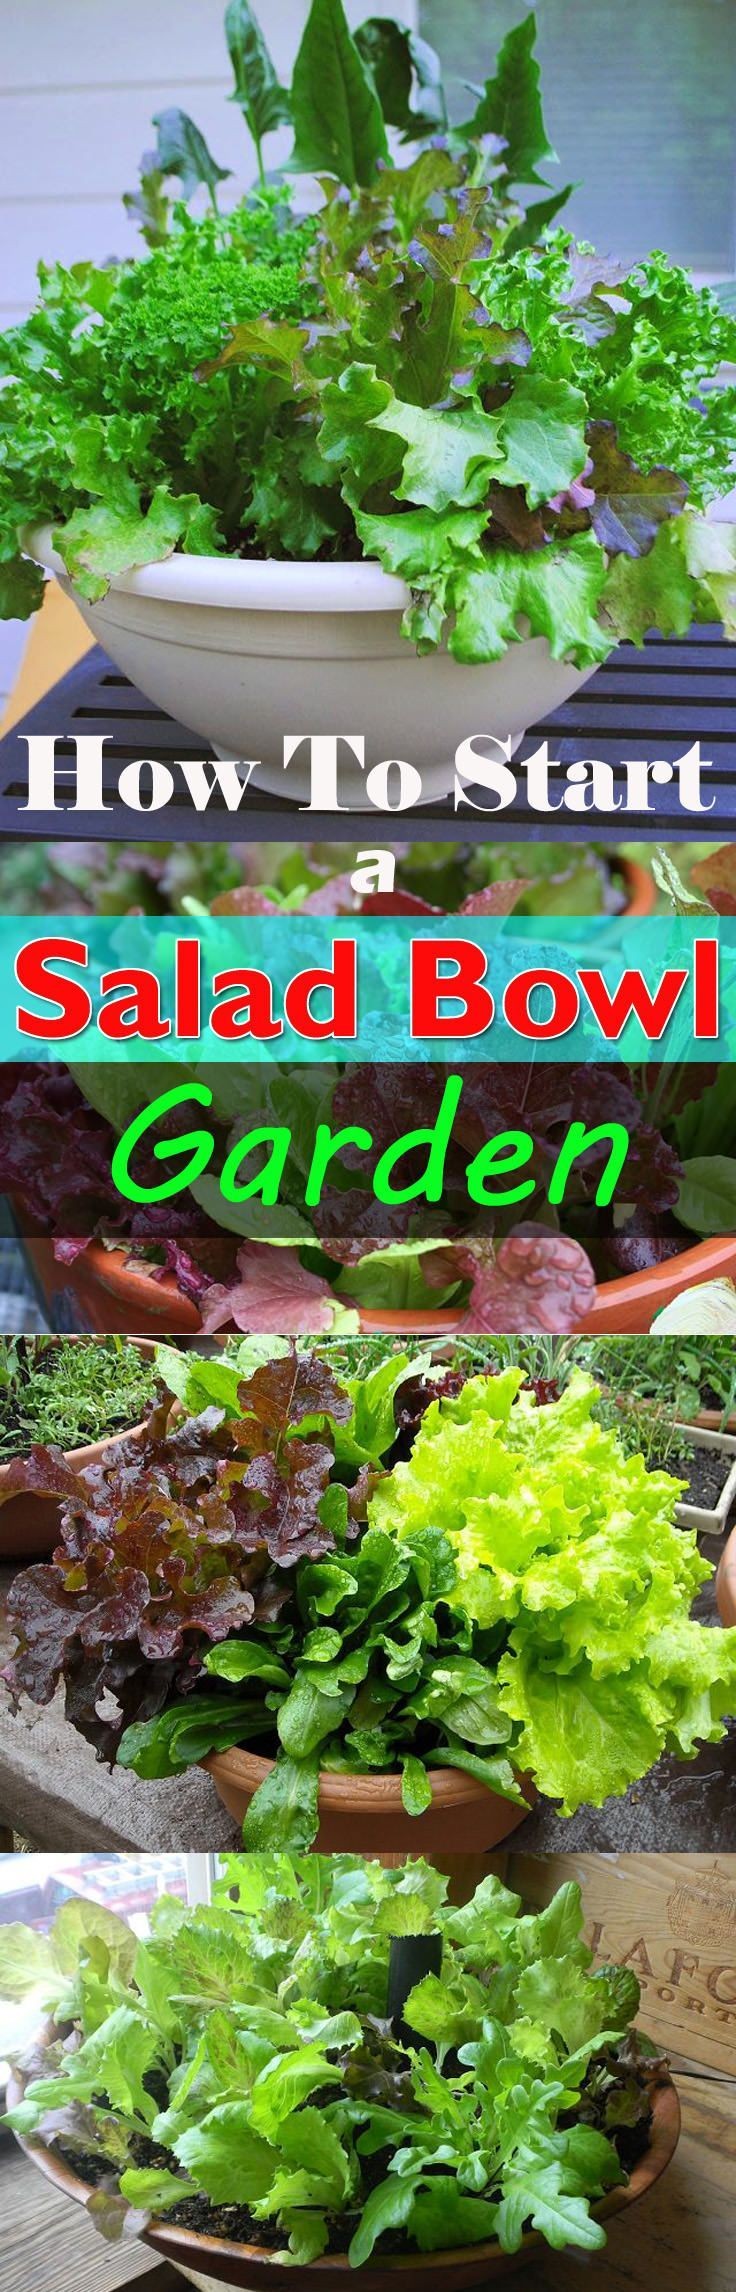 Home gardening vegetables - Best 10 Home Vegetable Garden Ideas On Pinterest Home Vegetable Garden Design Vegetable Boxes And Gardening